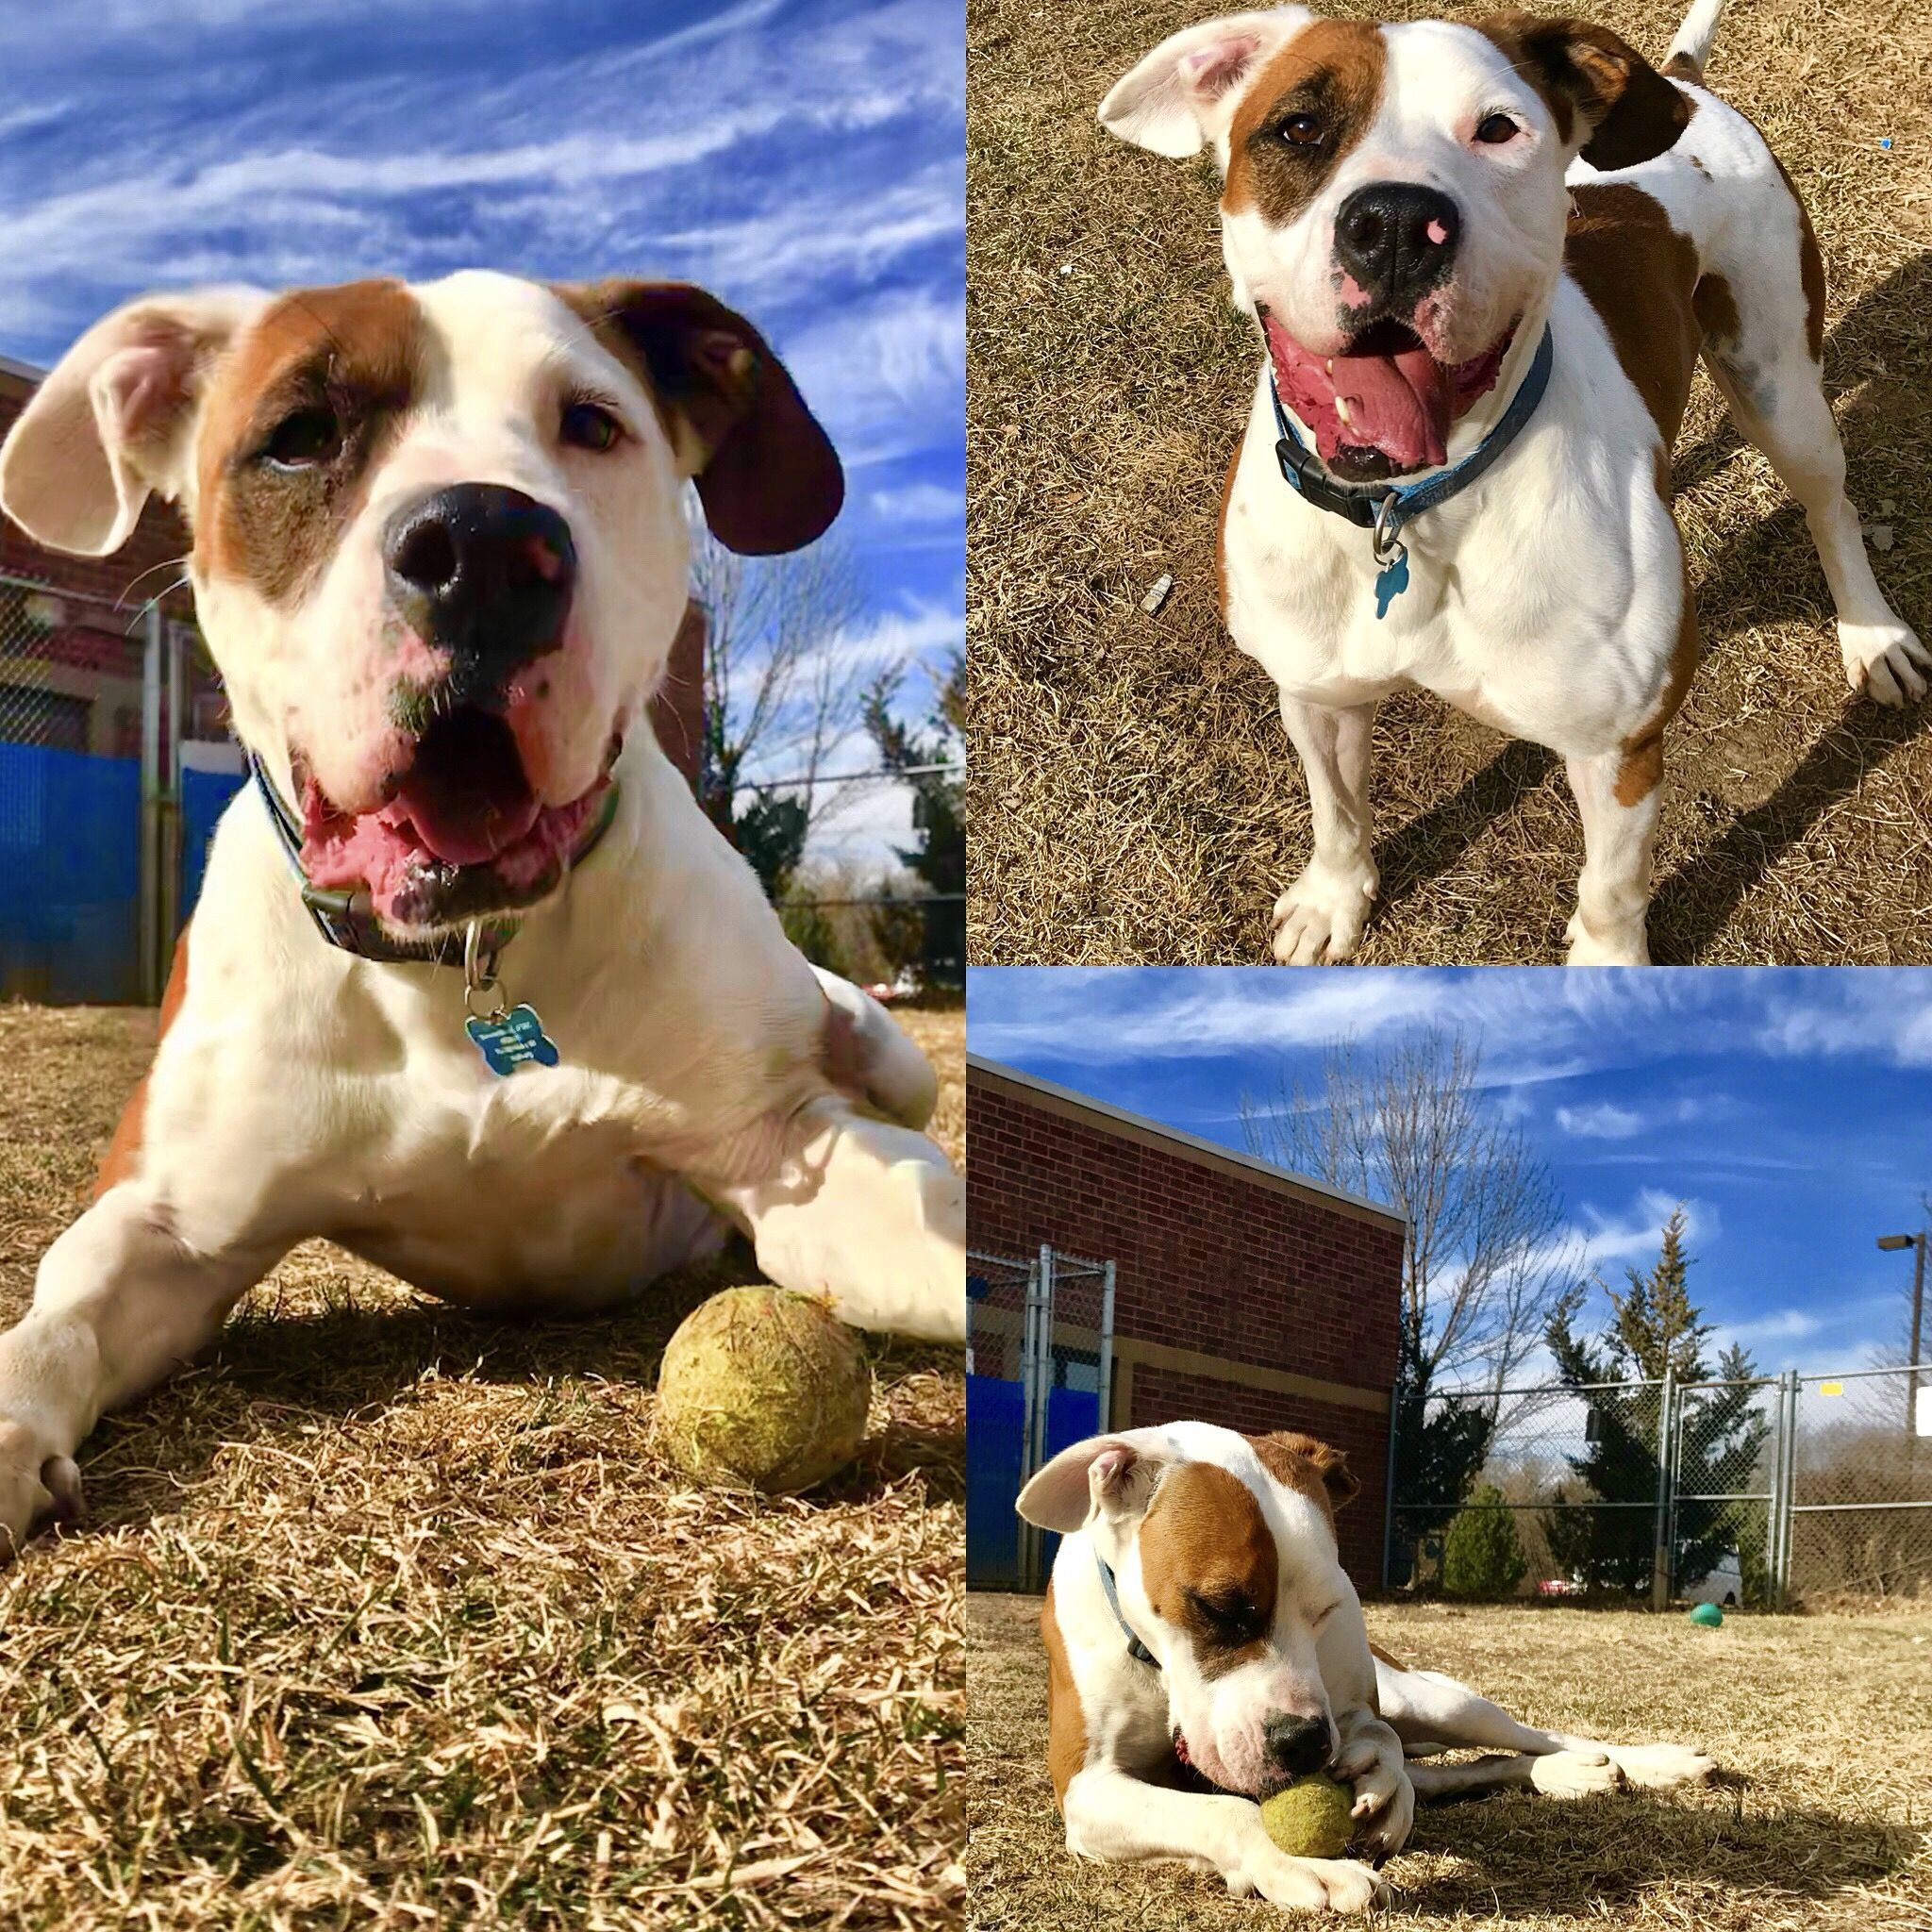 SOS Groot is available for adoption through Humane